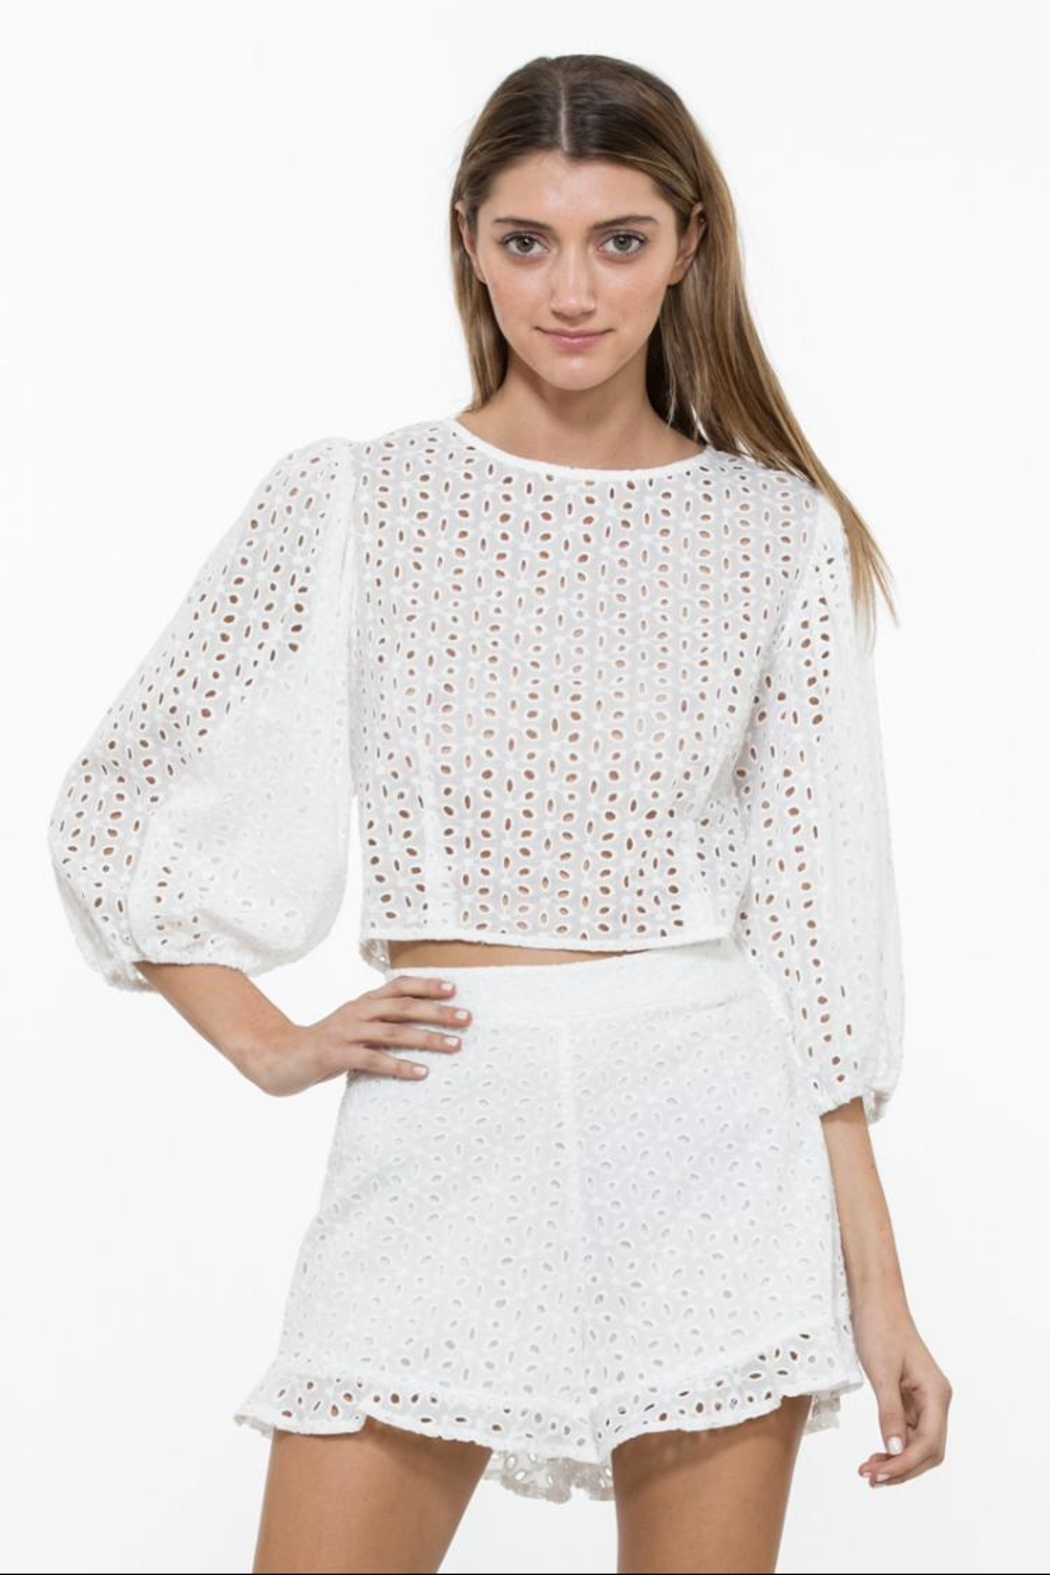 En Creme Long-Sleeve Lace Top from California by Rose ...